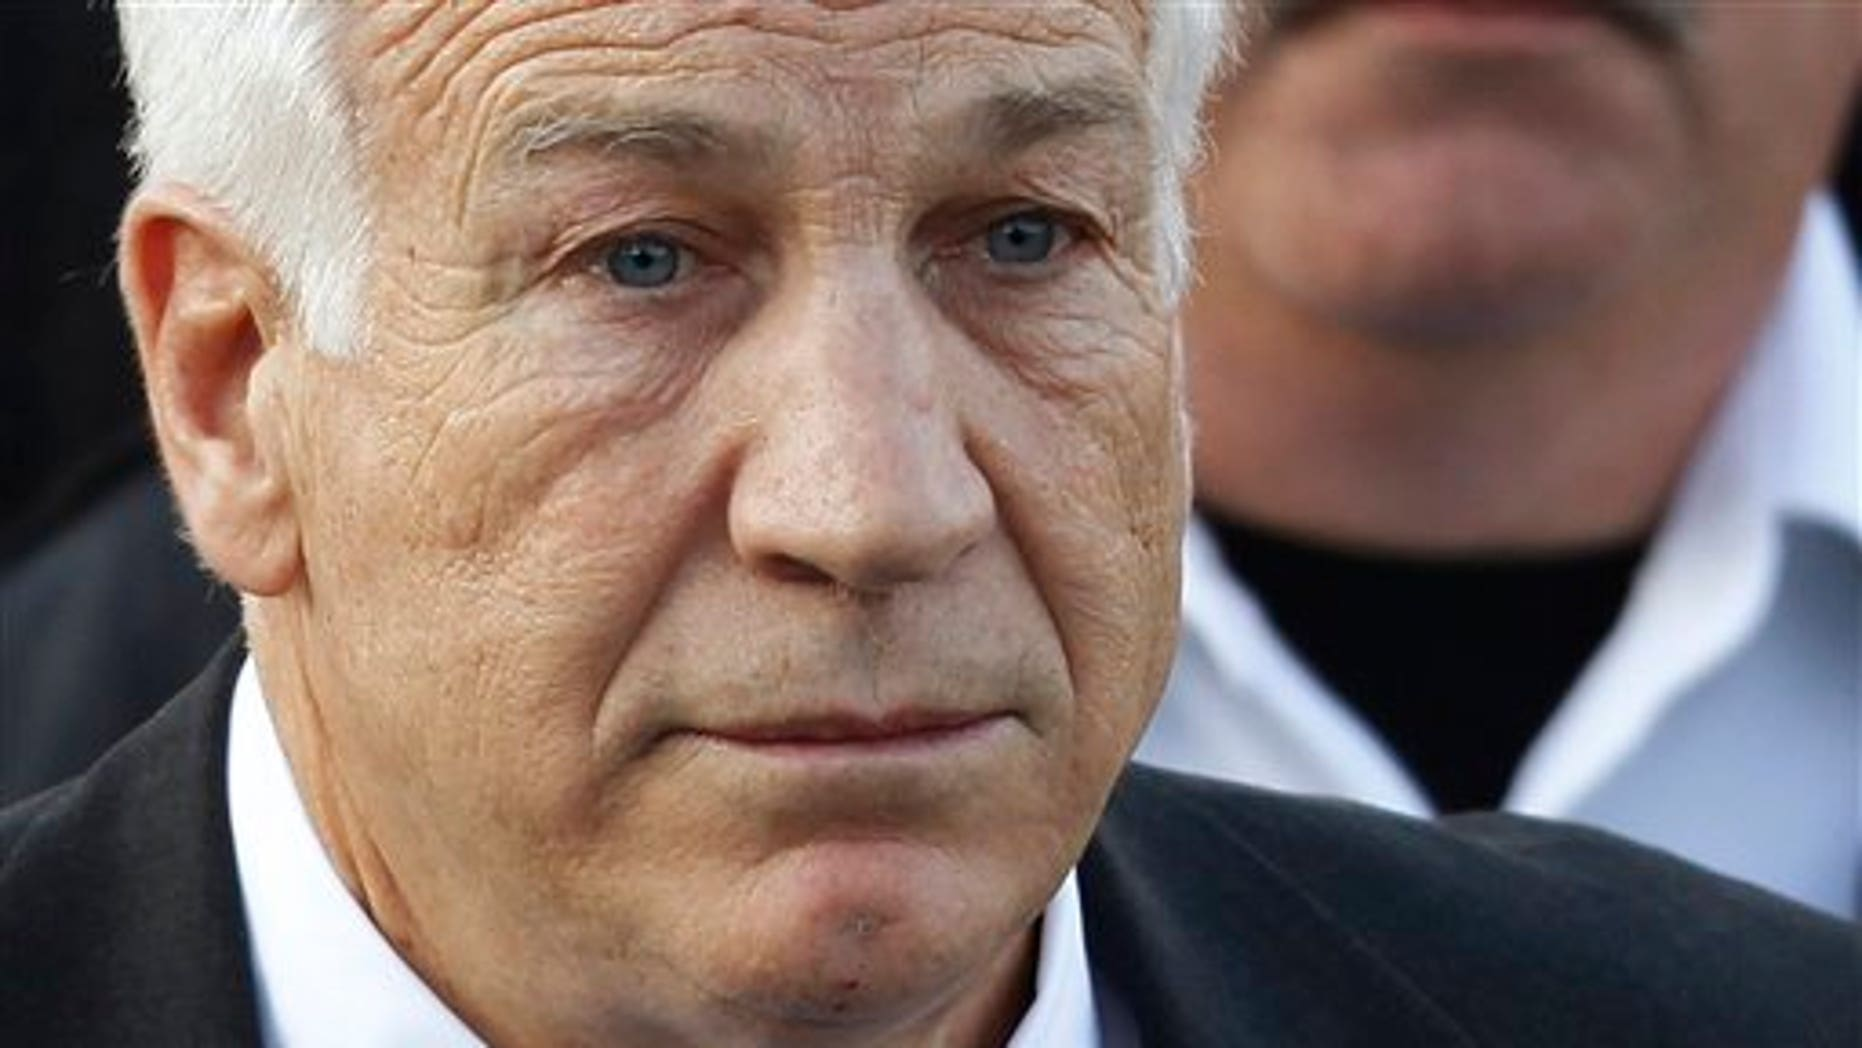 In this Dec. 13, 2011 file photo,Jerry Sandusky, the former Penn State assistant football coach charged with sexually abusing boys, leaves the Centre County Courthouse in Bellefonte, Pa.